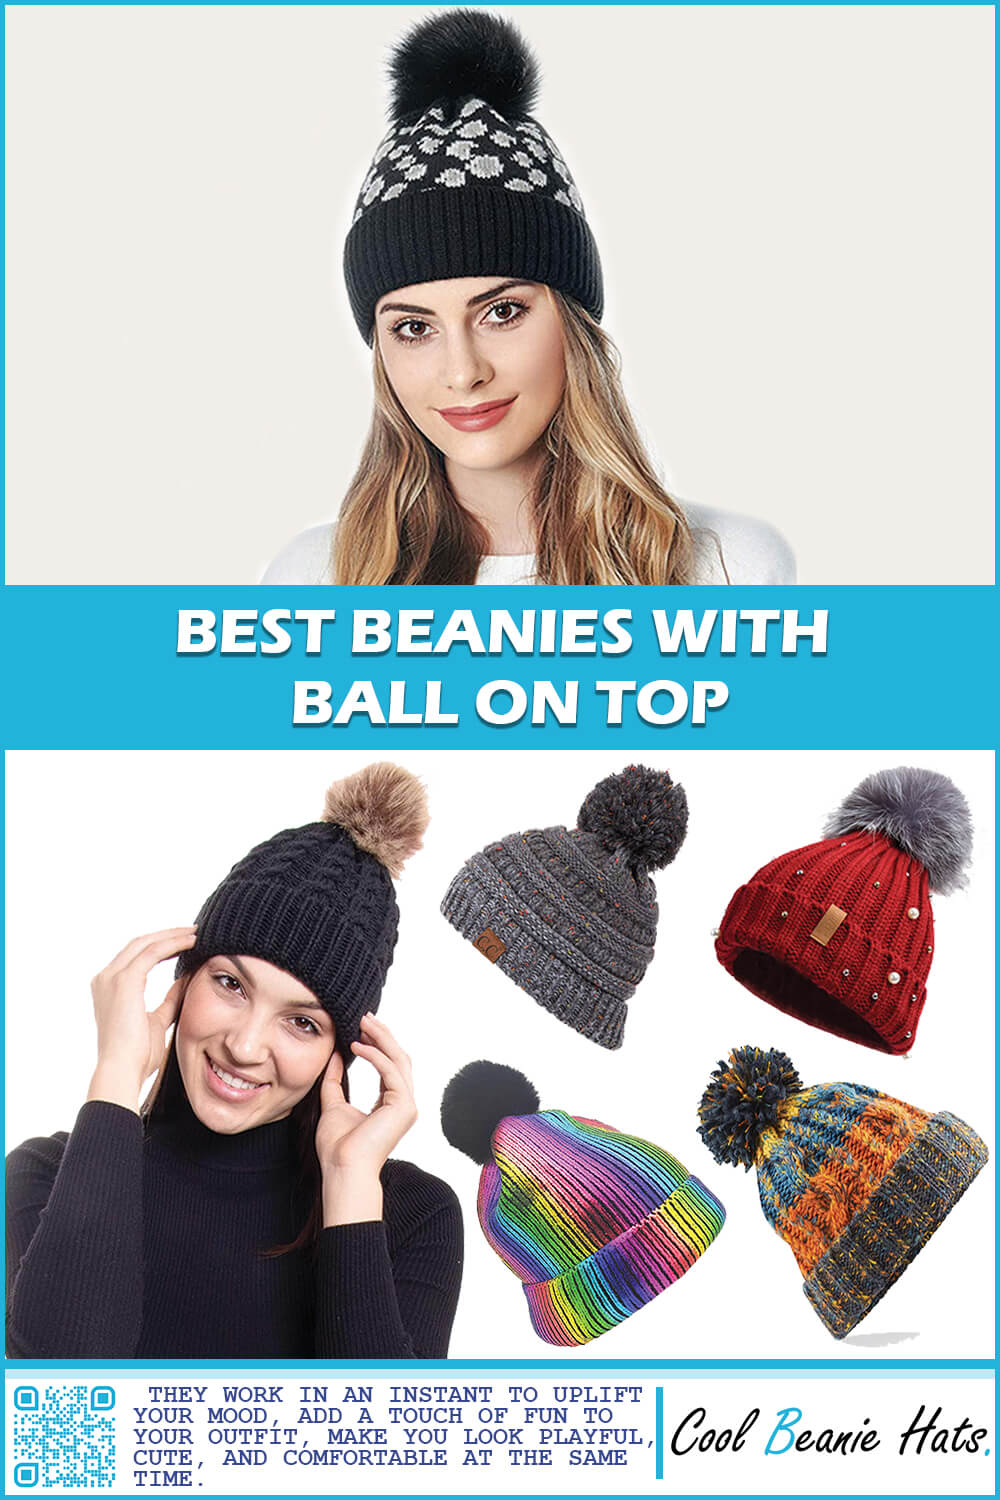 Beanies with Ball on Top